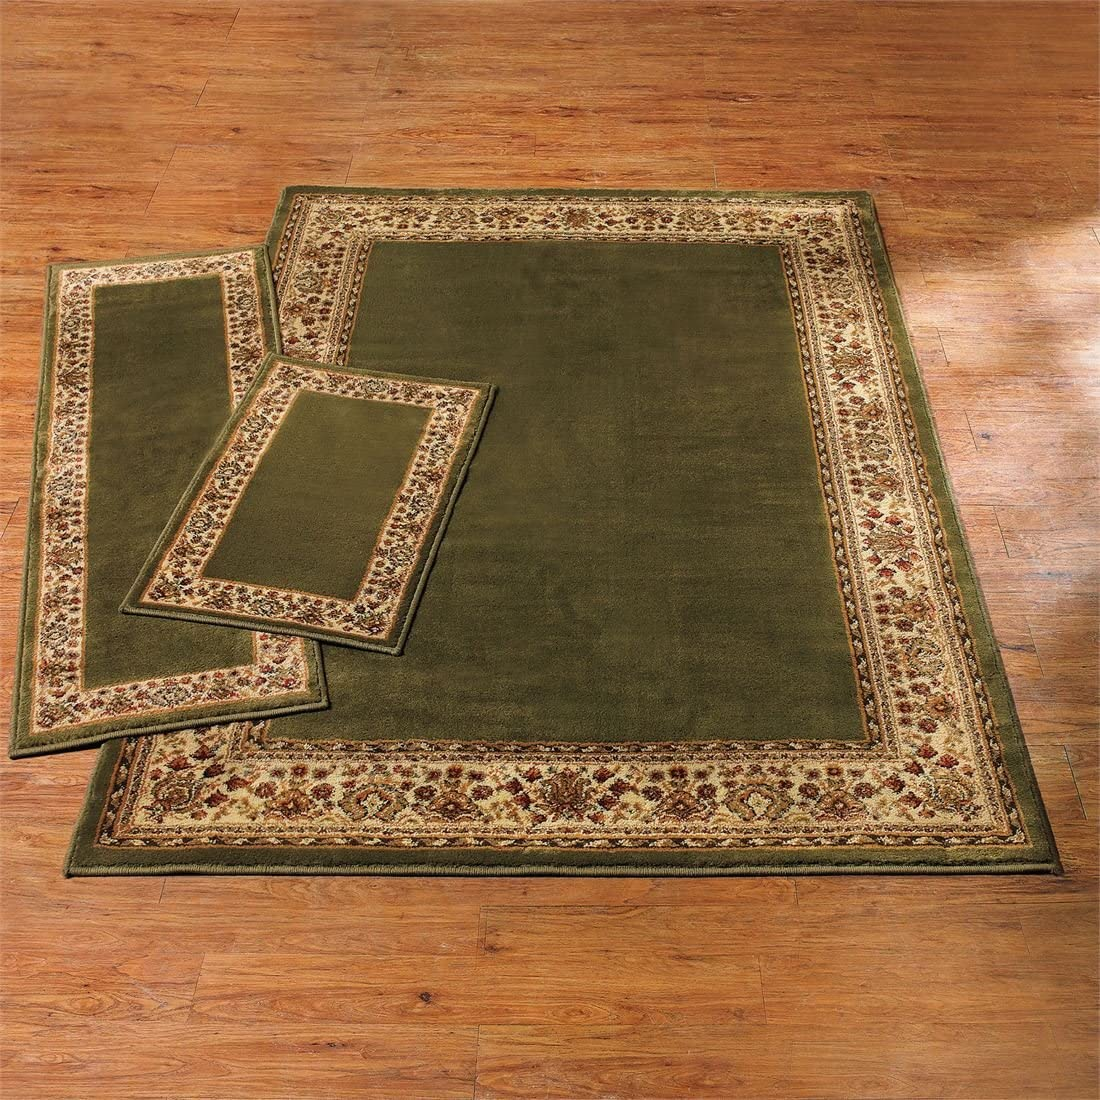 BrylaneHome Decorative 3-Pc Rug Set with Runner Gold Ivory